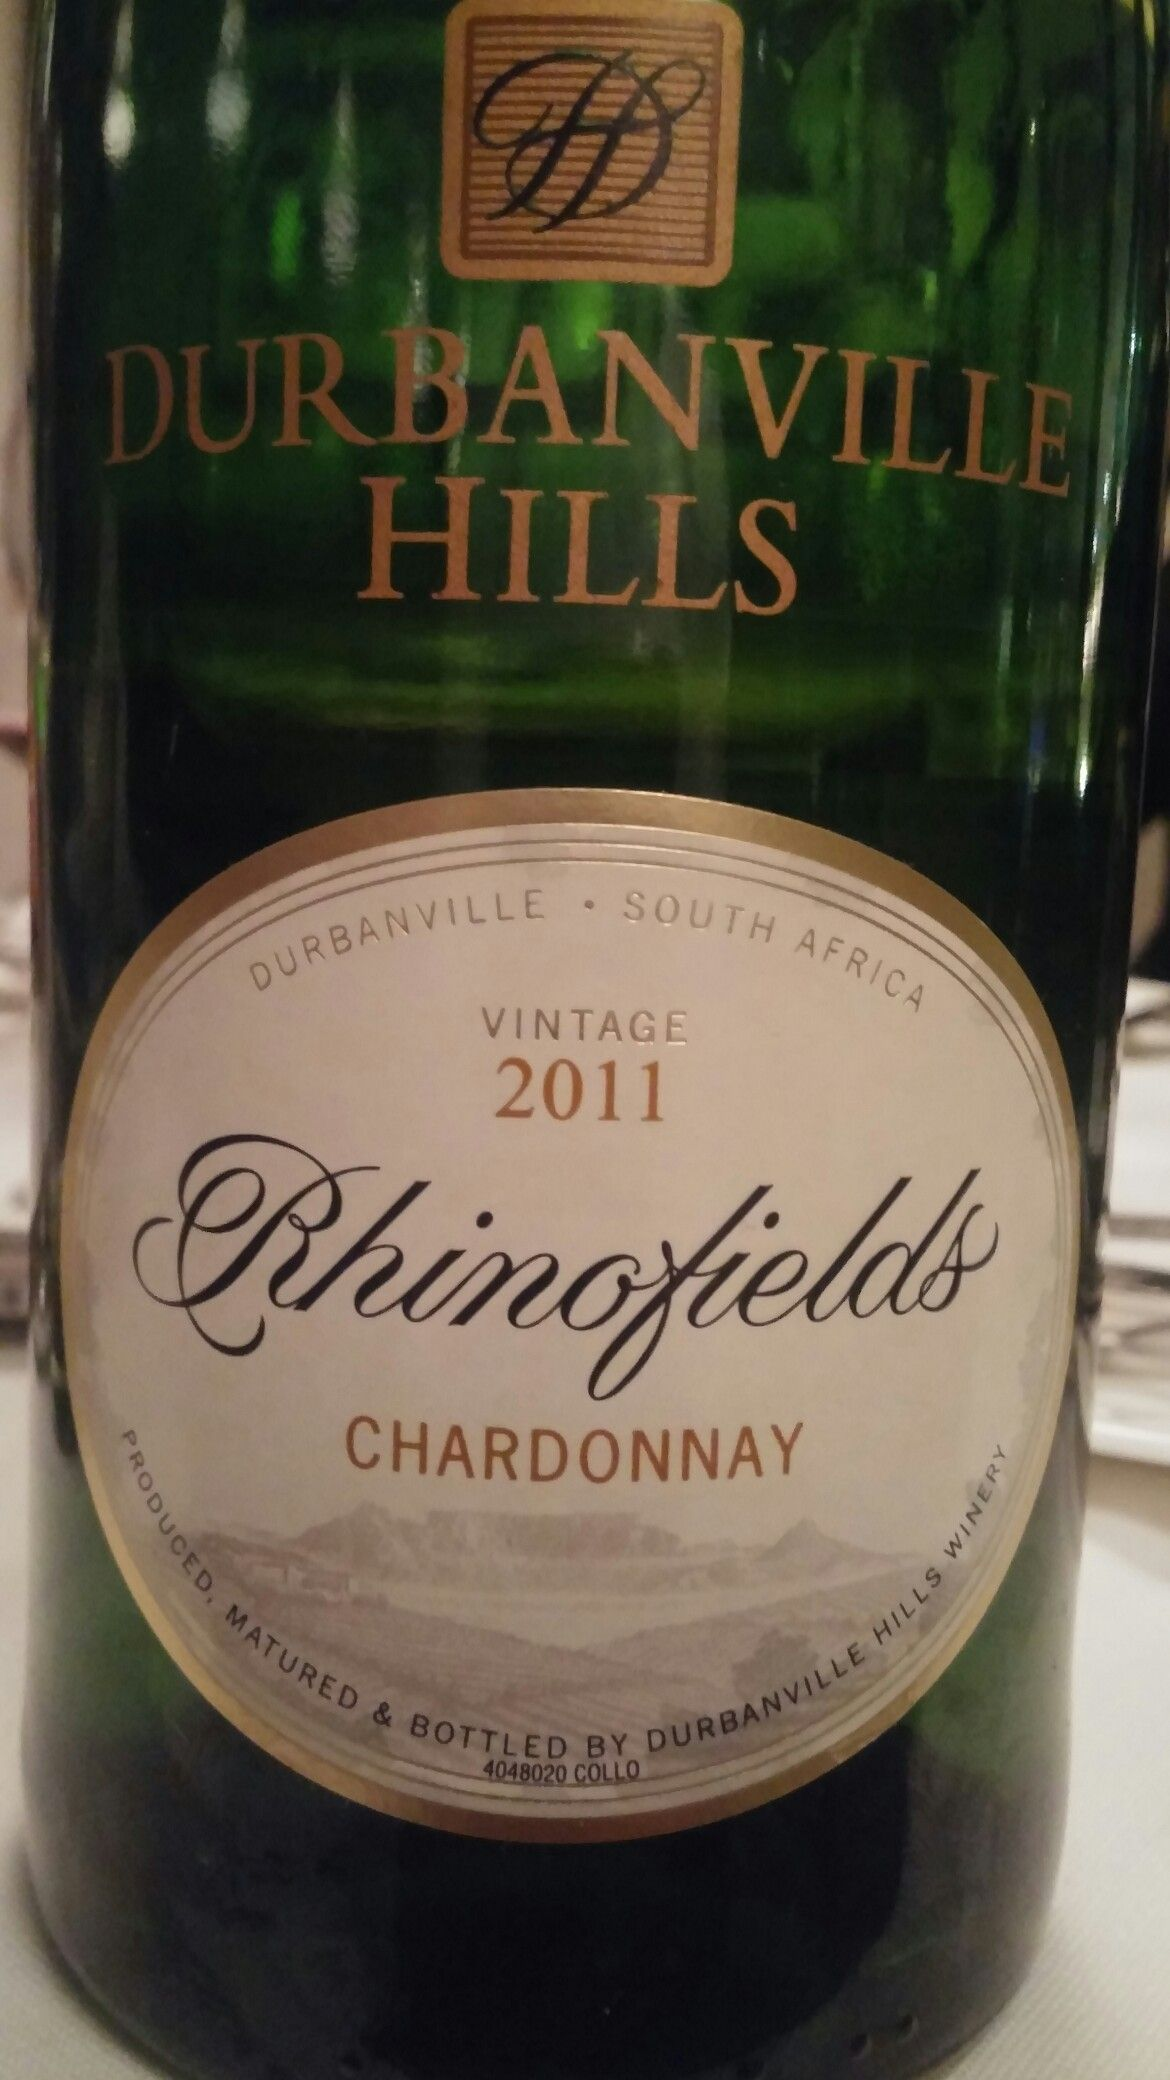 Durbanville Hills Rhinofields Chardonnay 2011 85 Points Sommelier Miguel Chan Full tasting notes: www.vivino.com/users/miguel-chan  #SouthAfrica #Wine #DurbanvilleHills #Rhinofields #Chardonnay #Durbanville #Sommelier #MiguelChan